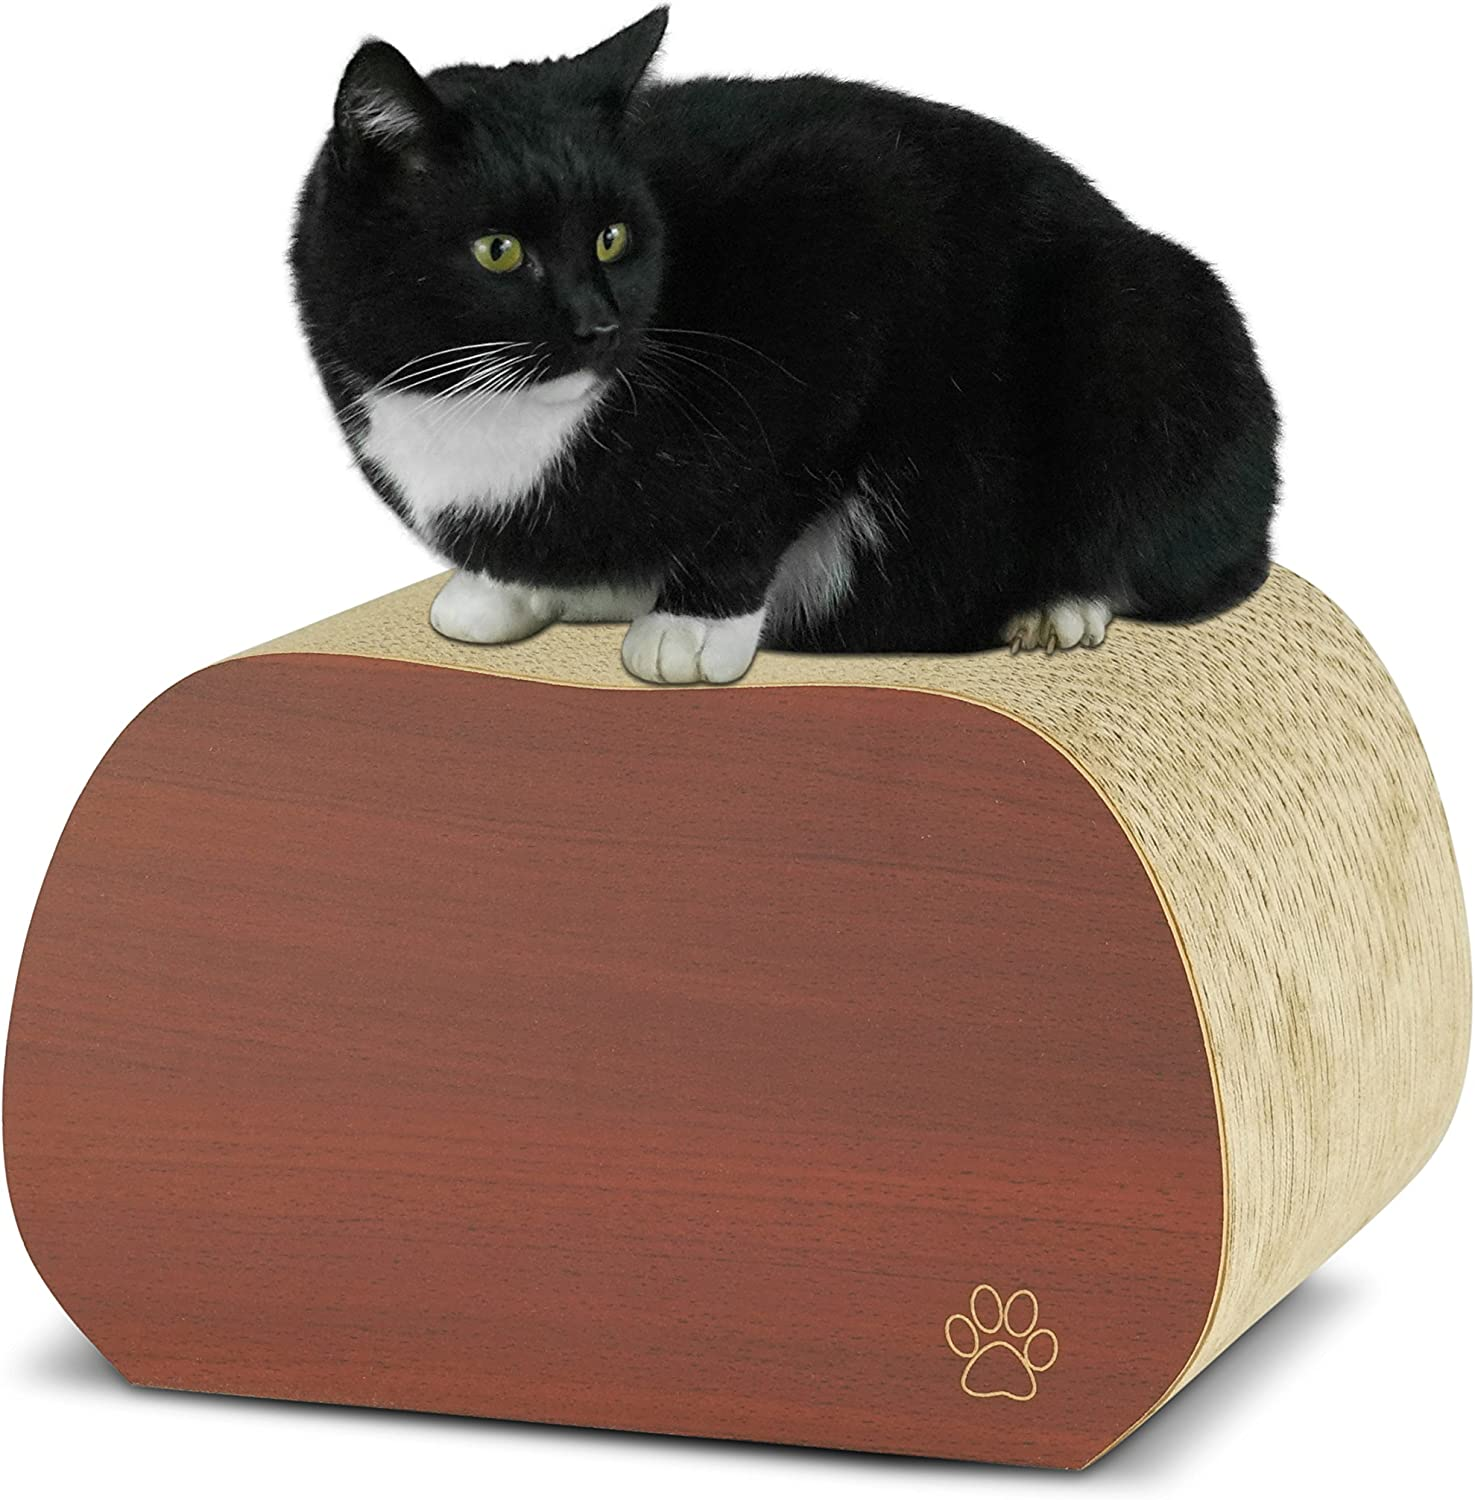 Oliver & Iris Premium Cat Scratcher Stone Shaped Block Lounger, Cherry Wood